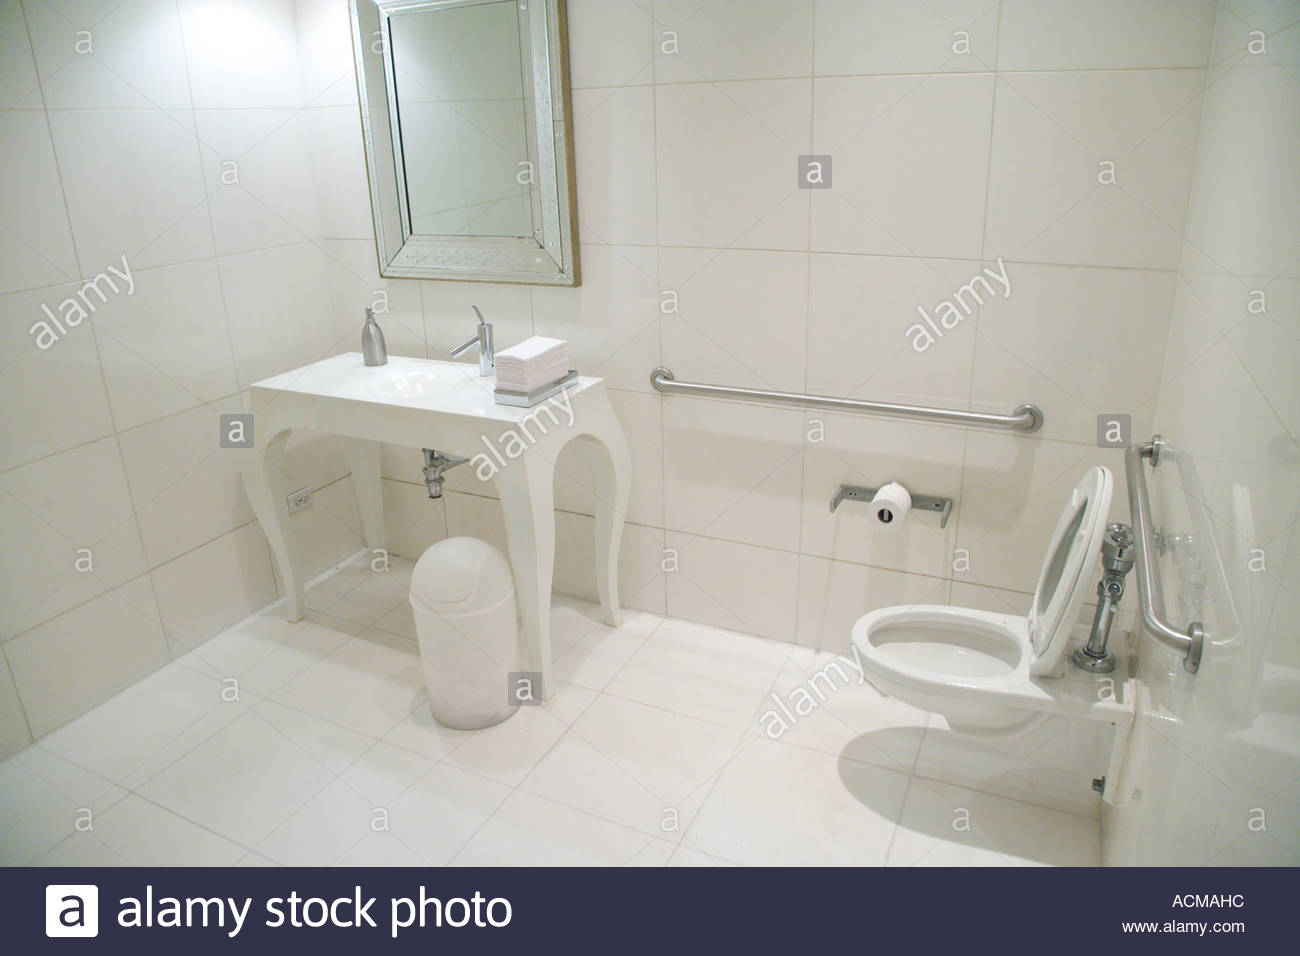 a very large white public toilet room Stock Photo 7535515 Alamy